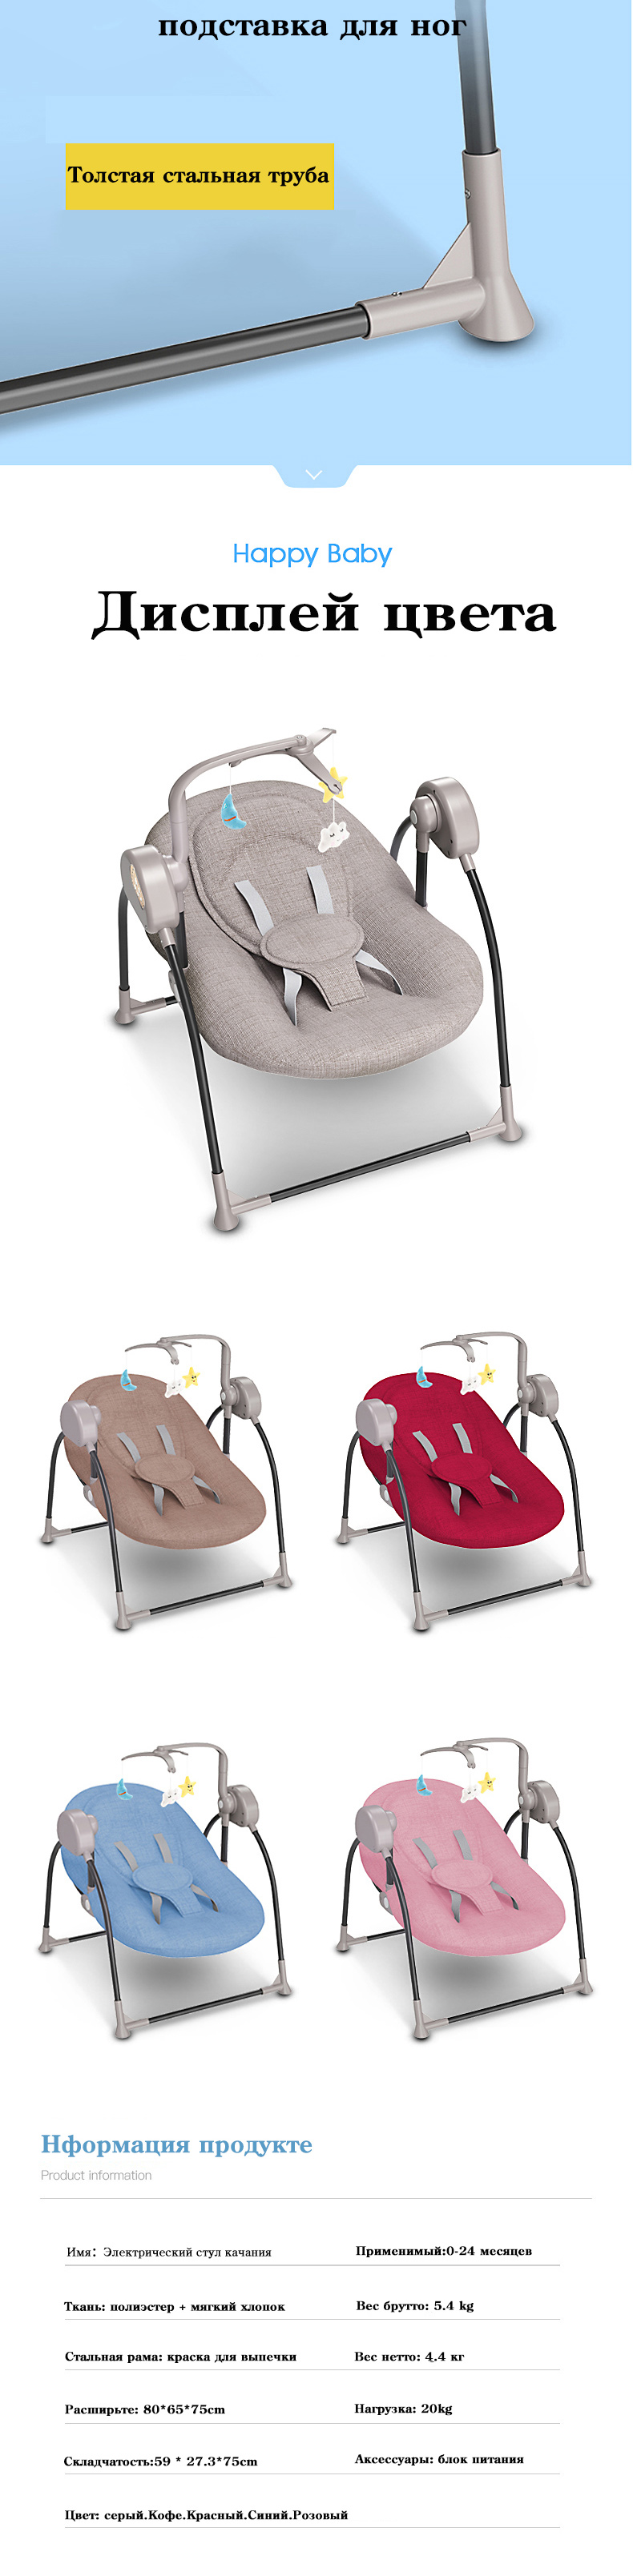 HTB1FFm1XlWD3KVjSZFsq6AqkpXaV Baby electric rocking chair cradle baby comfort recliner rocking chair baby supplies bed Russia free shipping